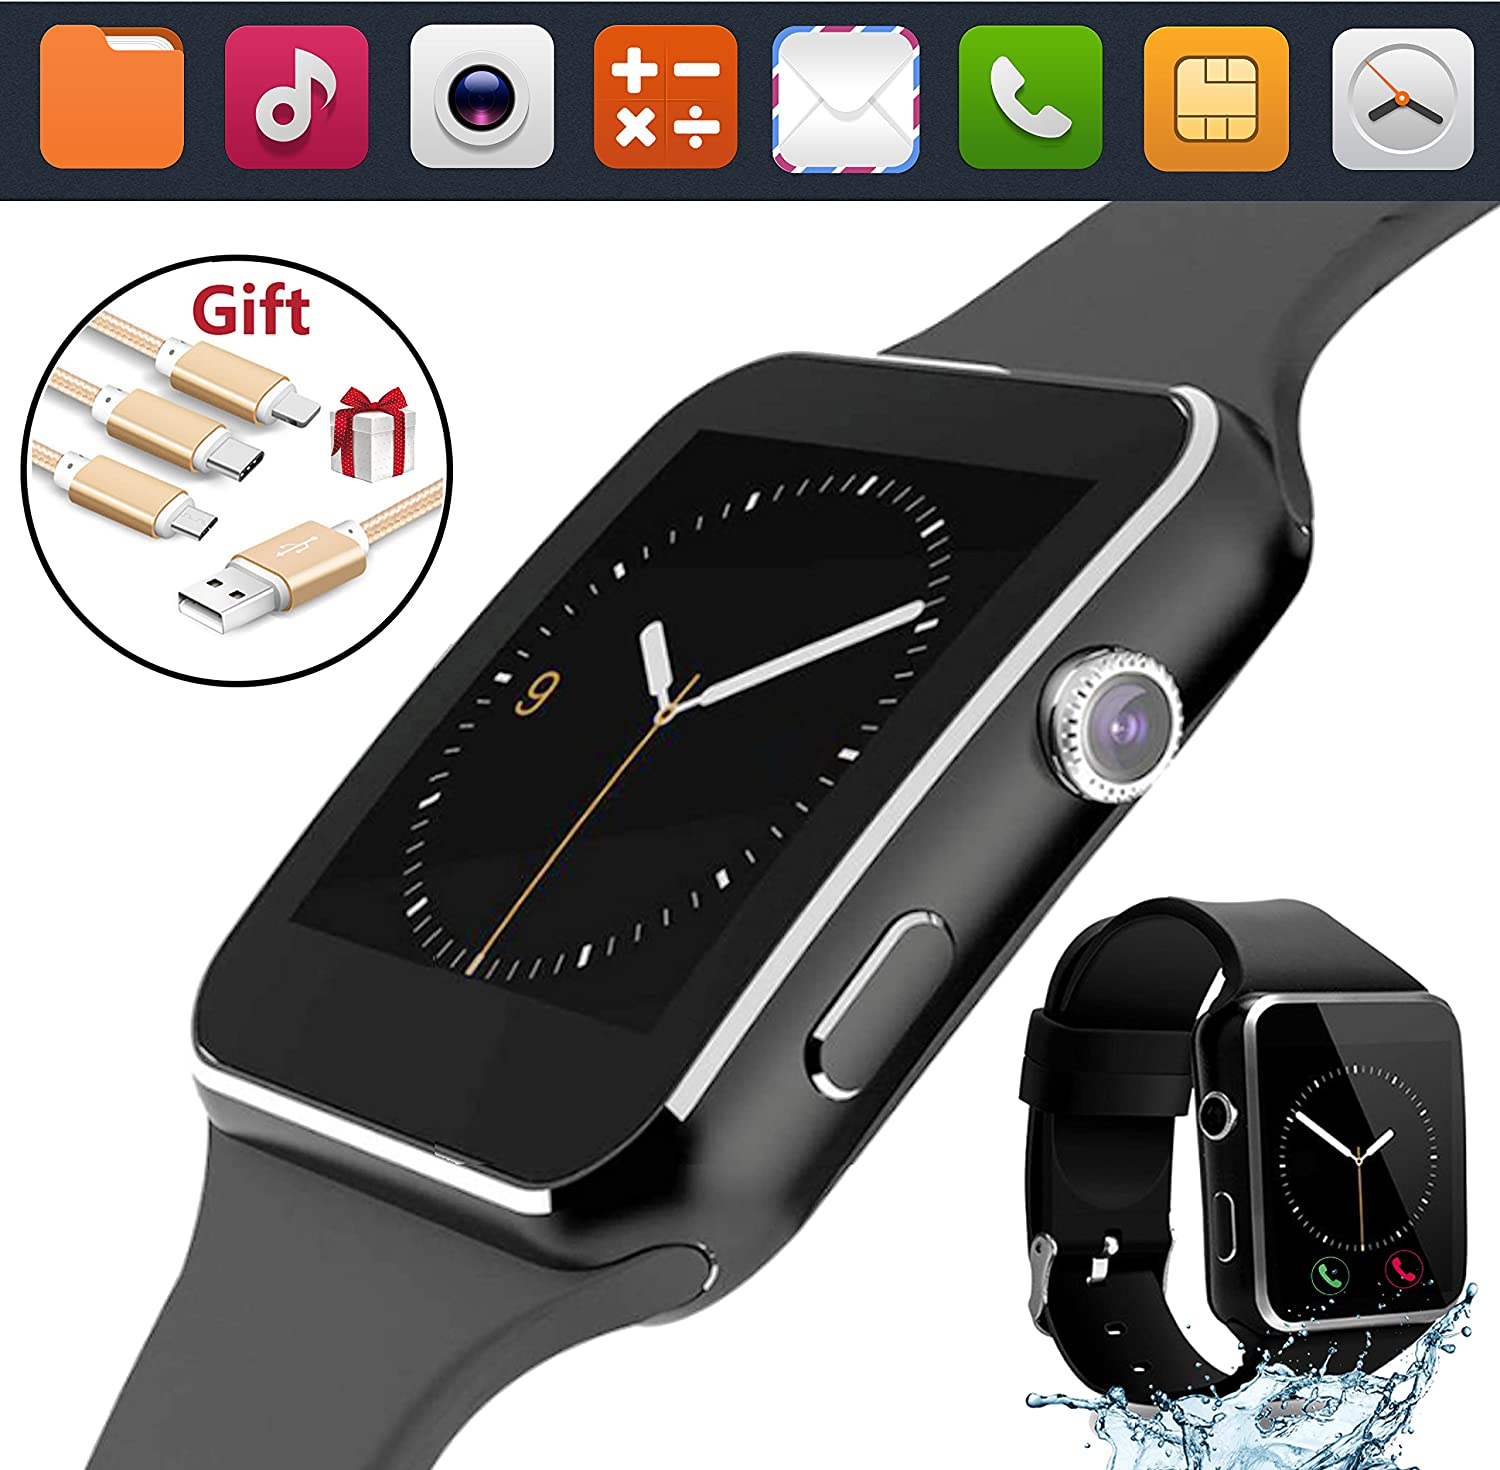 Amazon.com: 2018 Bluetooth Smart Watch Touchscreen with ...